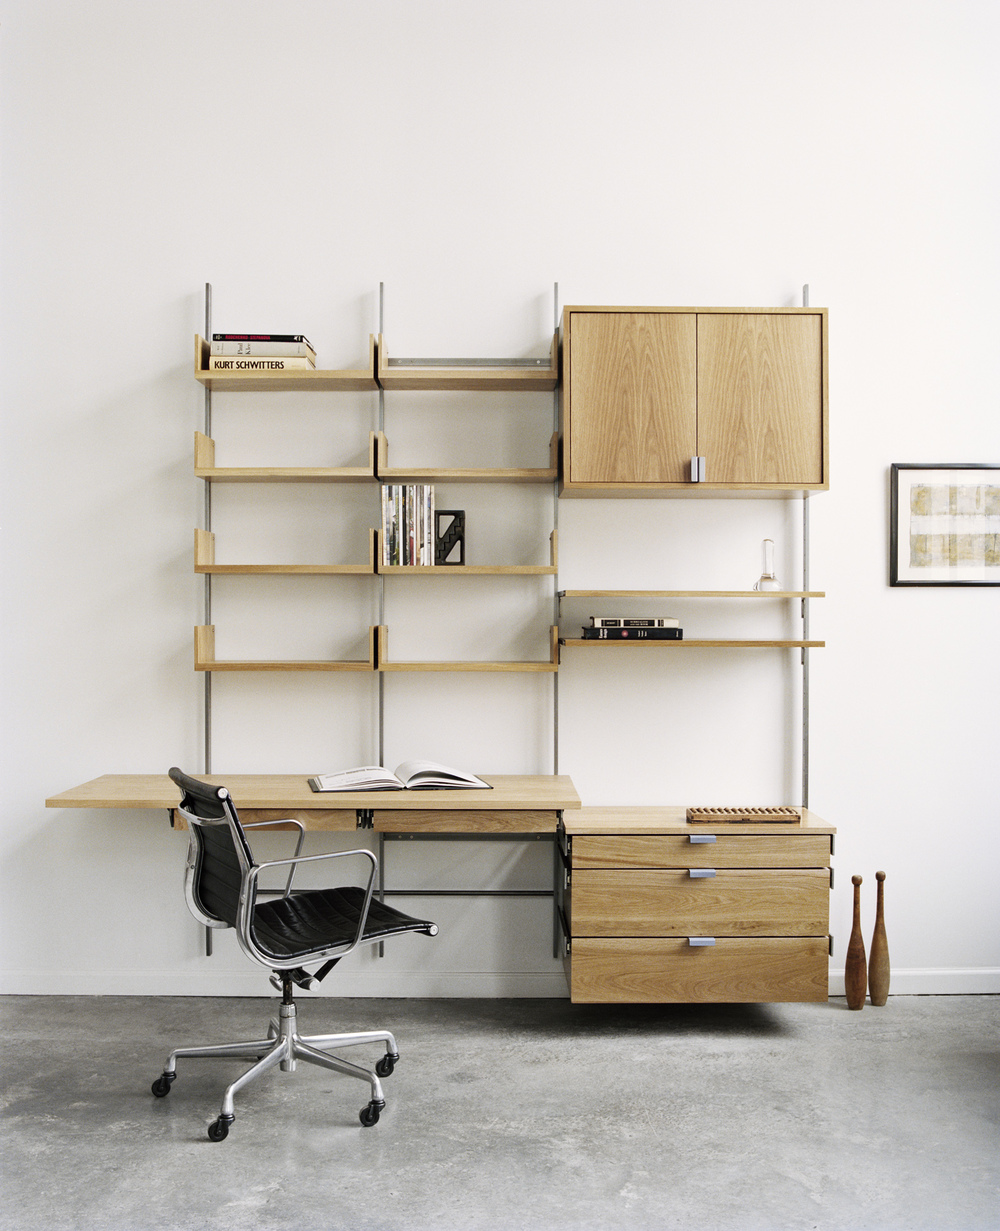 Modular furniture - Solid White Oak Cold Rolled Steel Desk Configuration Photograph By Meredith Heuer